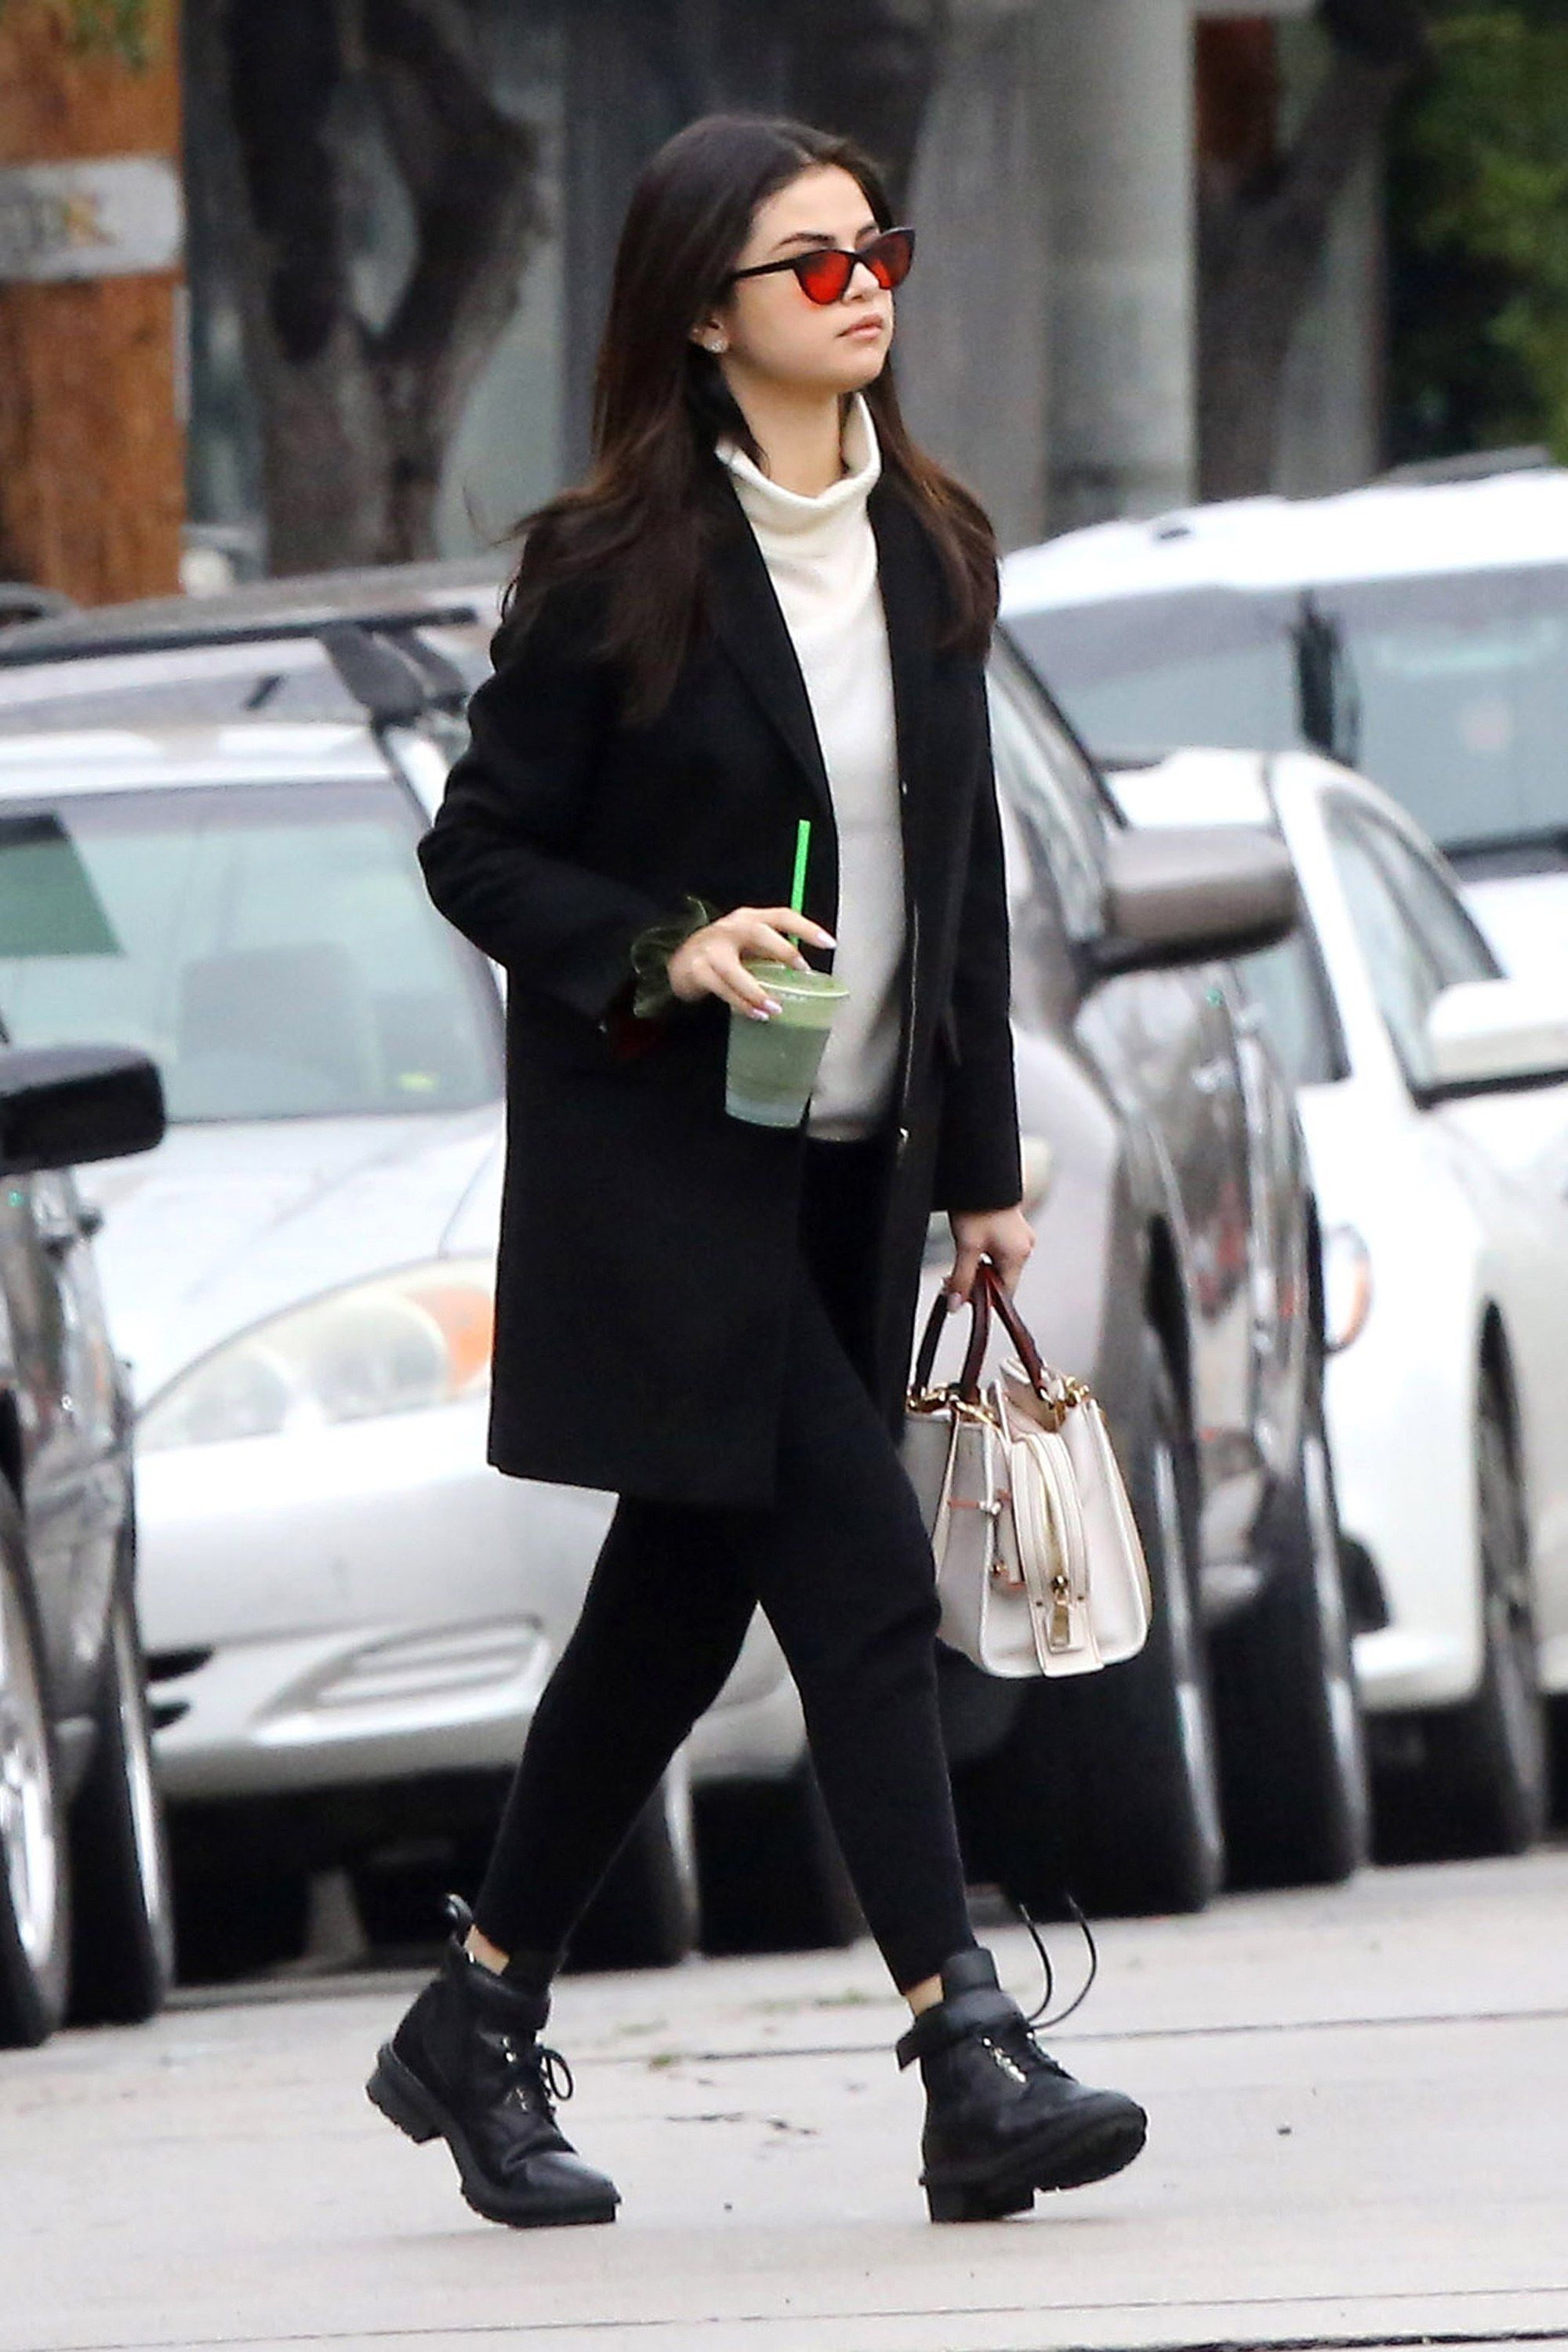 c8f502b43ec0 Selena Gomez Is Stepping Up Her Street Style Accessories Game ...